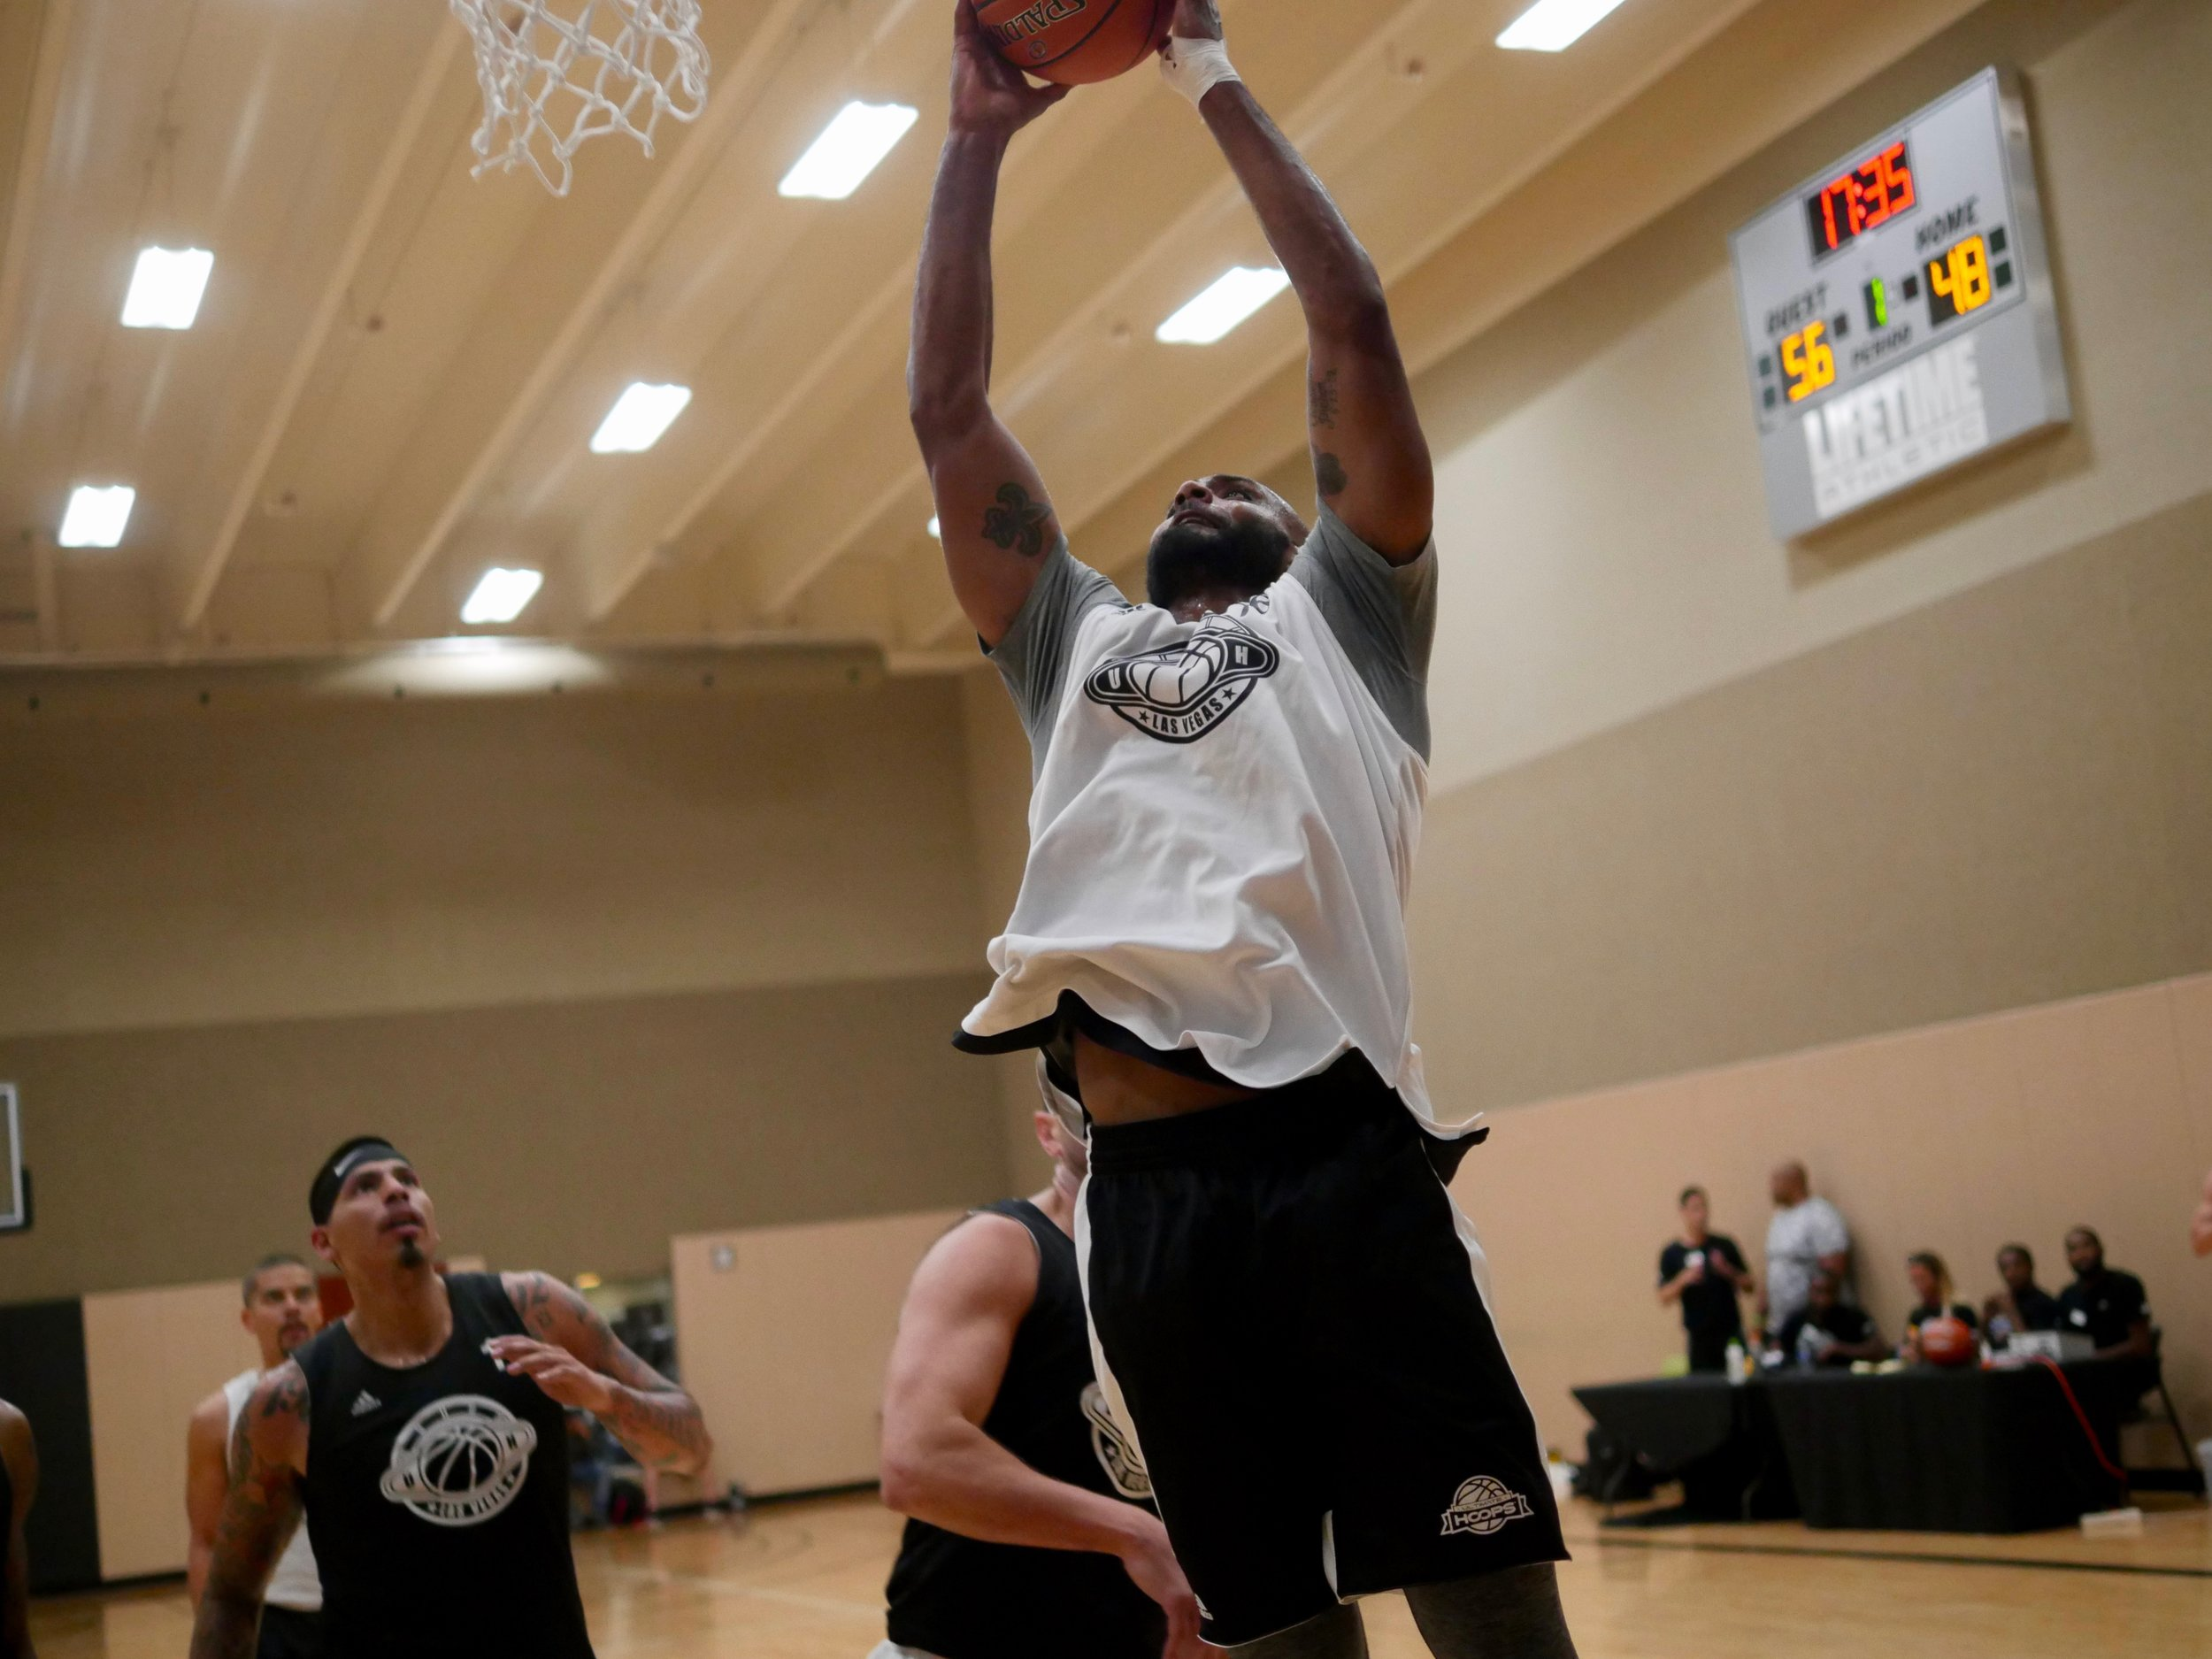 Pichon skying for a rebound in last year's tournament.